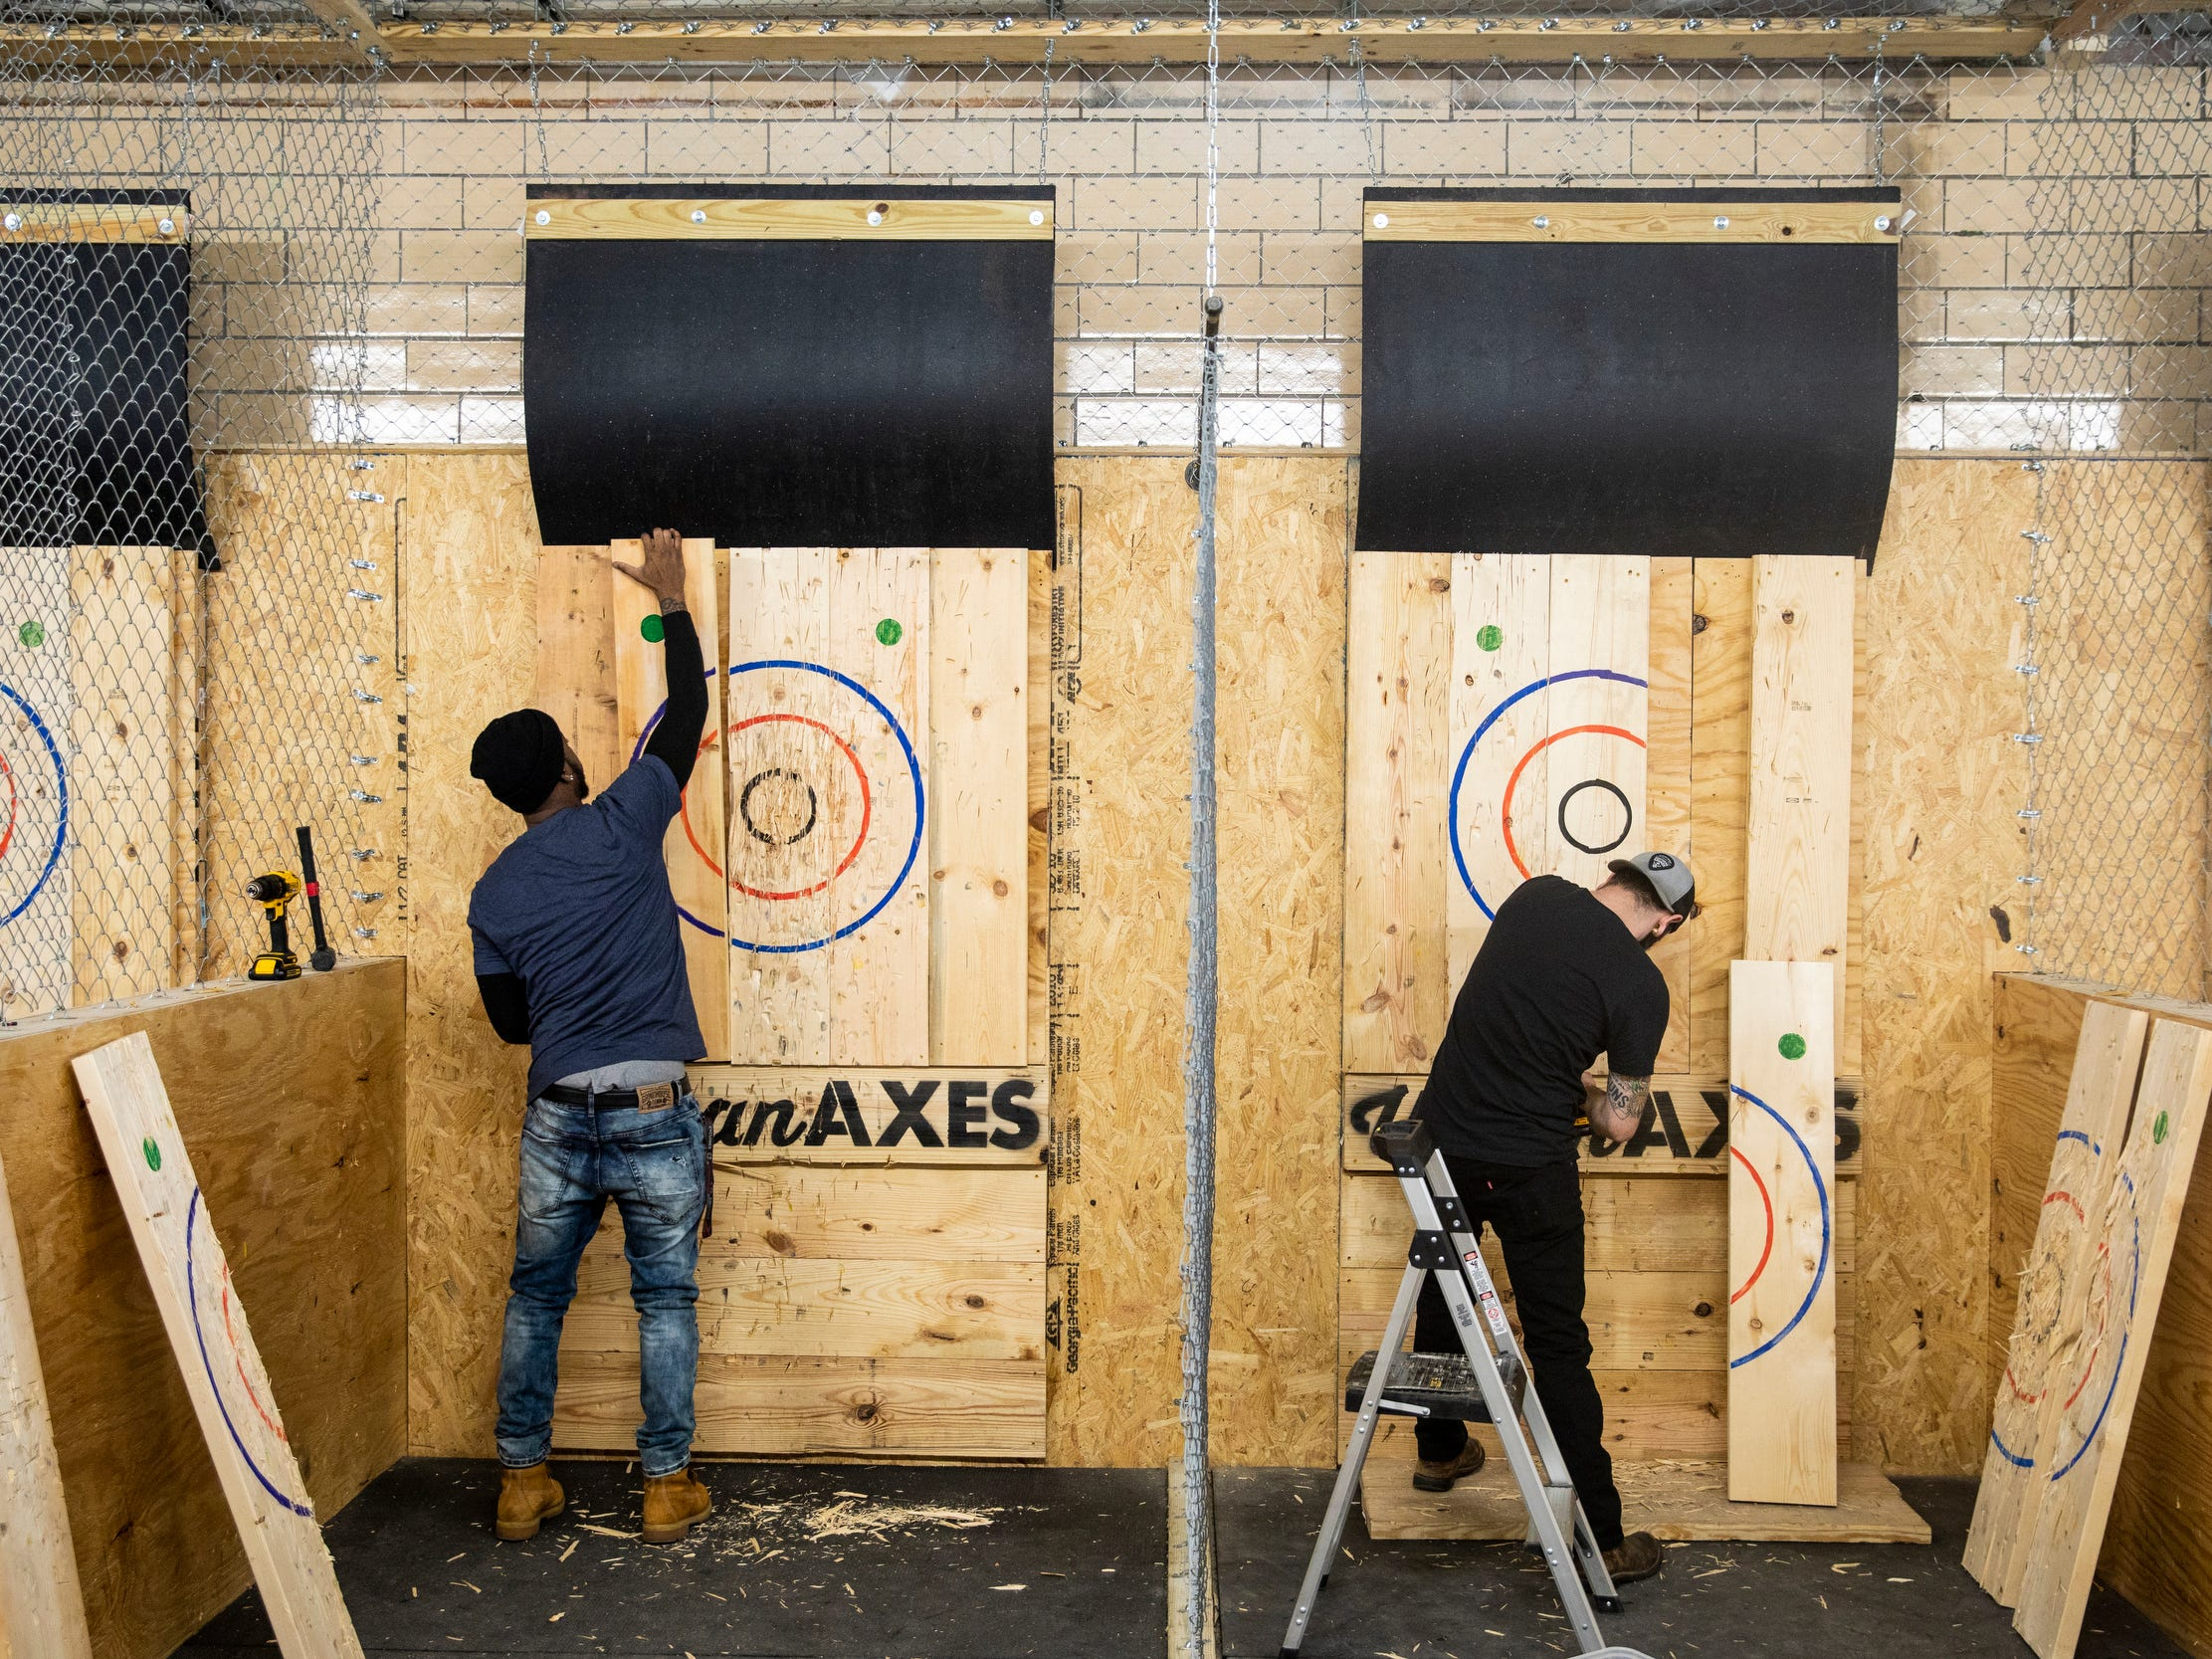 """Urban Axes Cincinnati coaches Jackie """"Jinx"""" Jackson and Ryan Bell replace the National Axe Throwing Federation targets."""